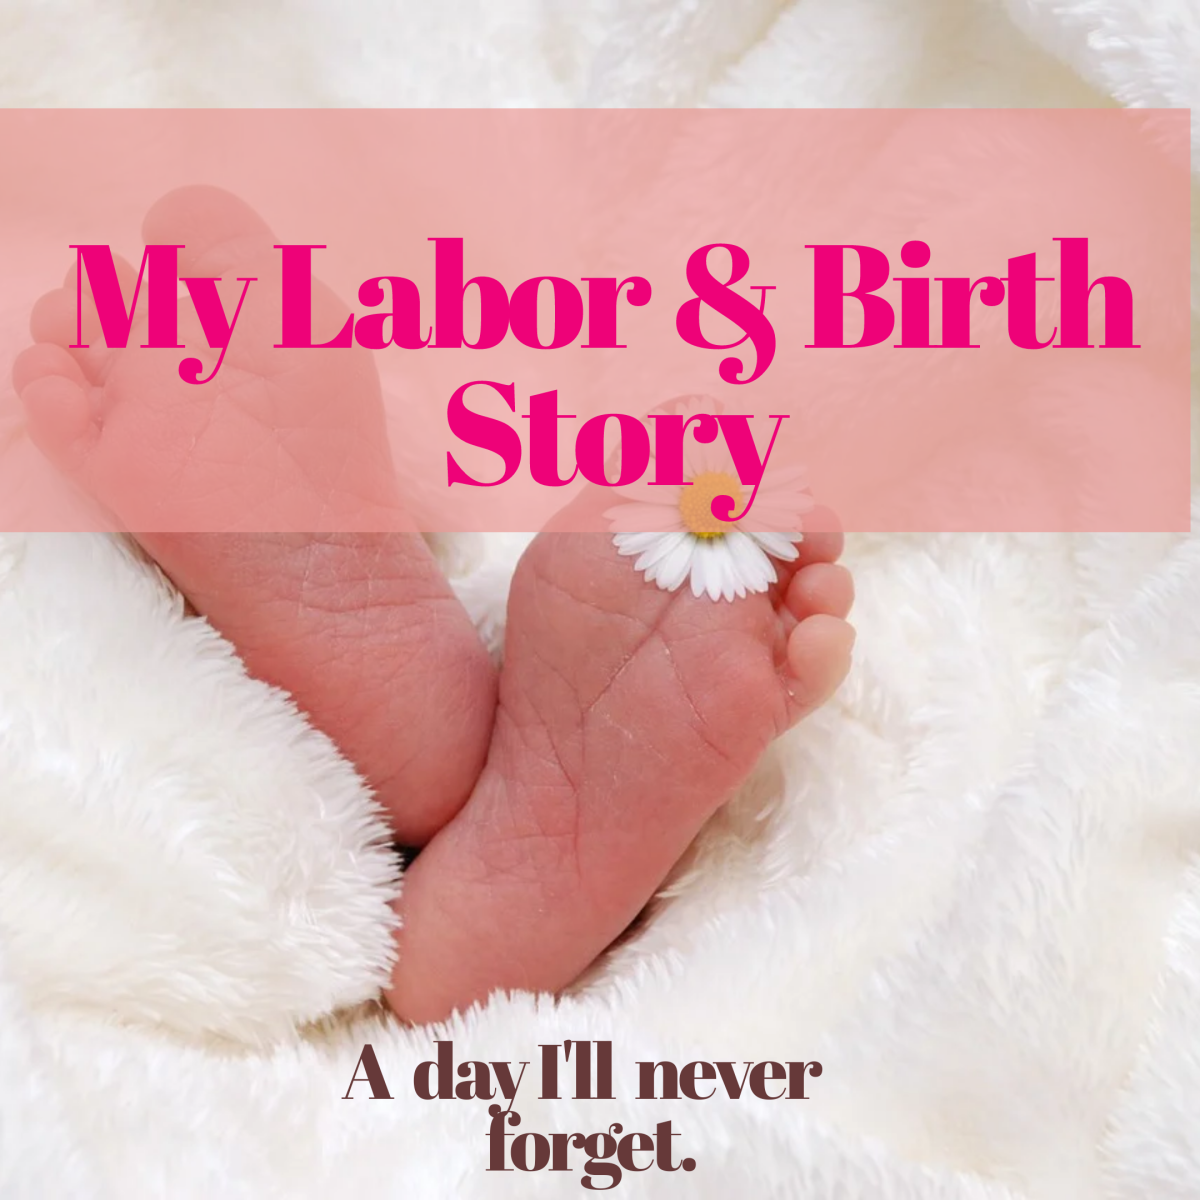 My Labour and Birth Story: A Day I'll Never Forget